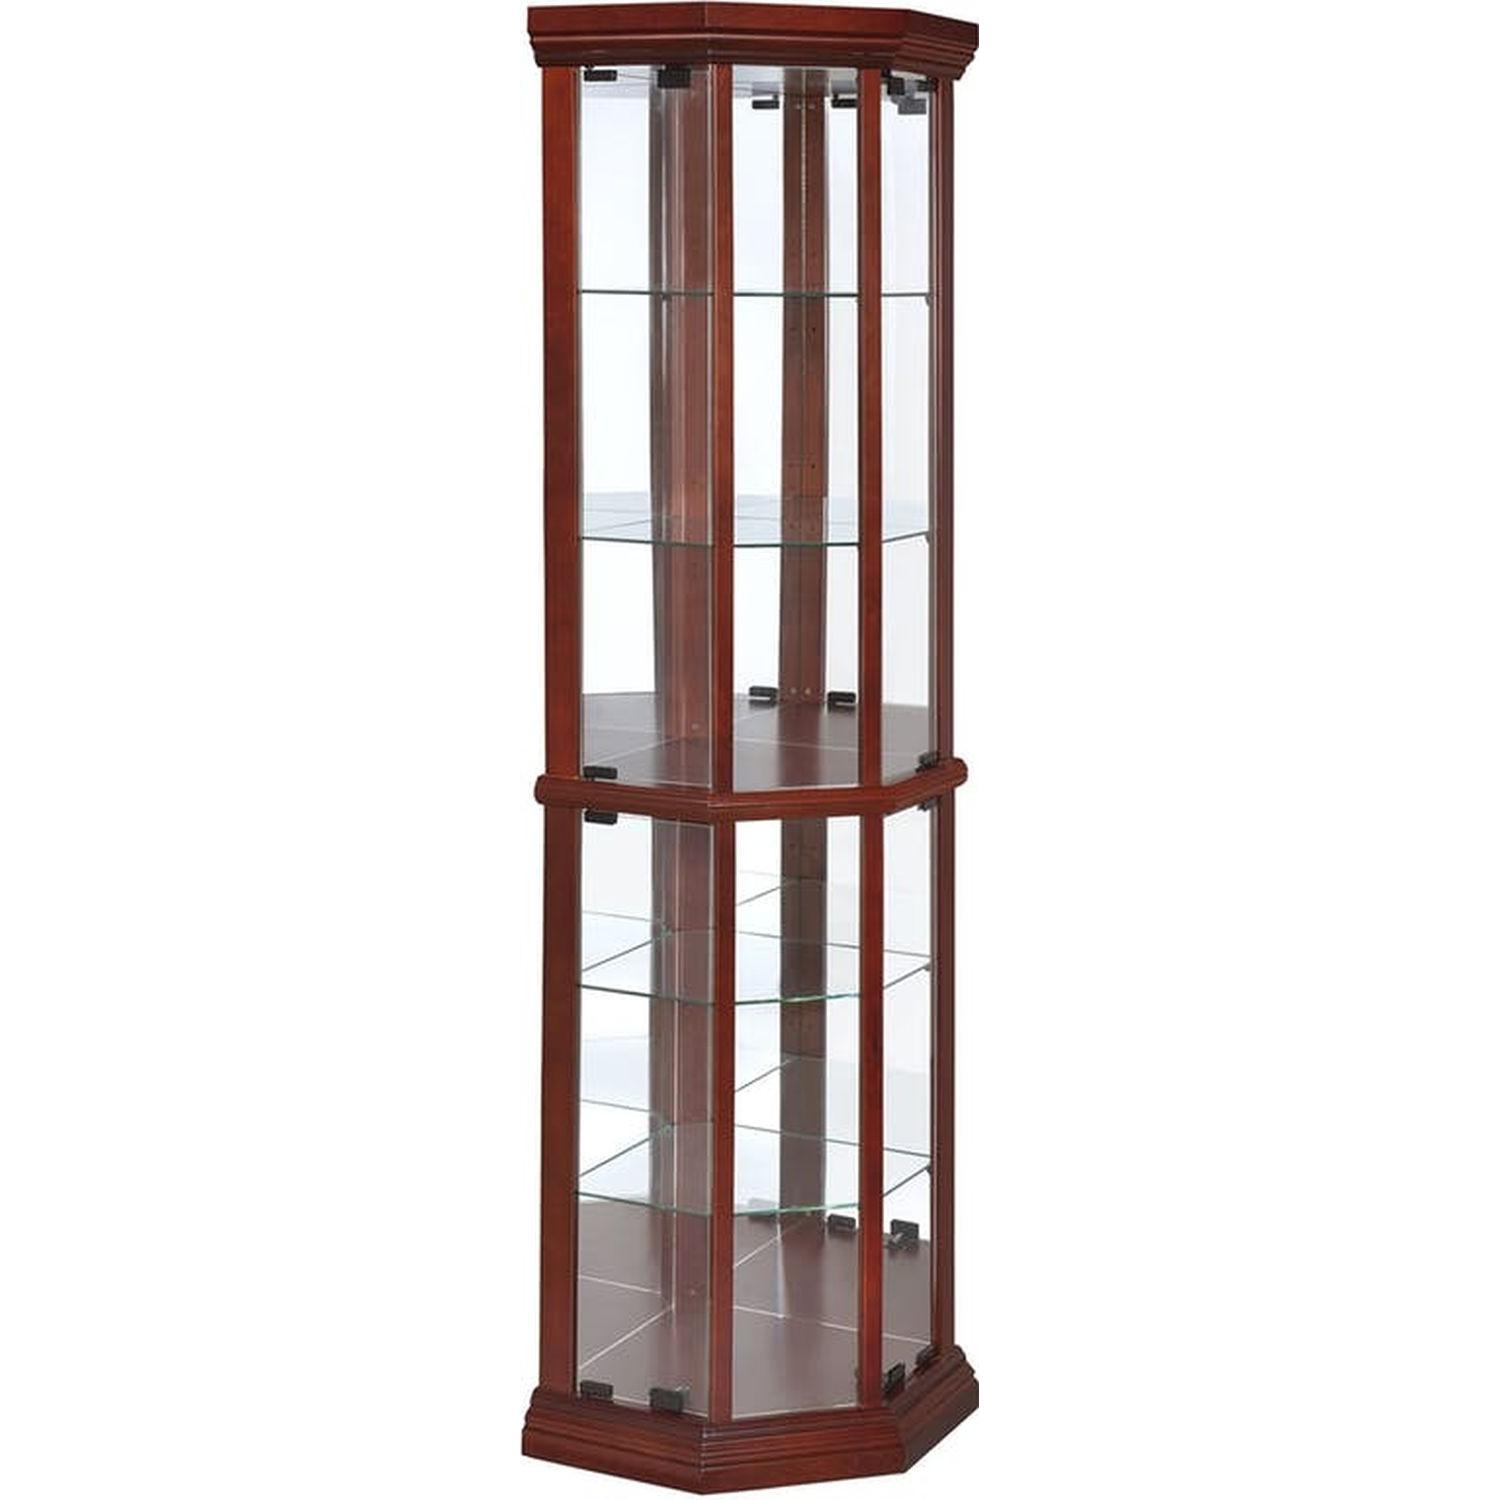 Curio Cabinet in Warm Brown w/ Glass Panels - image-5